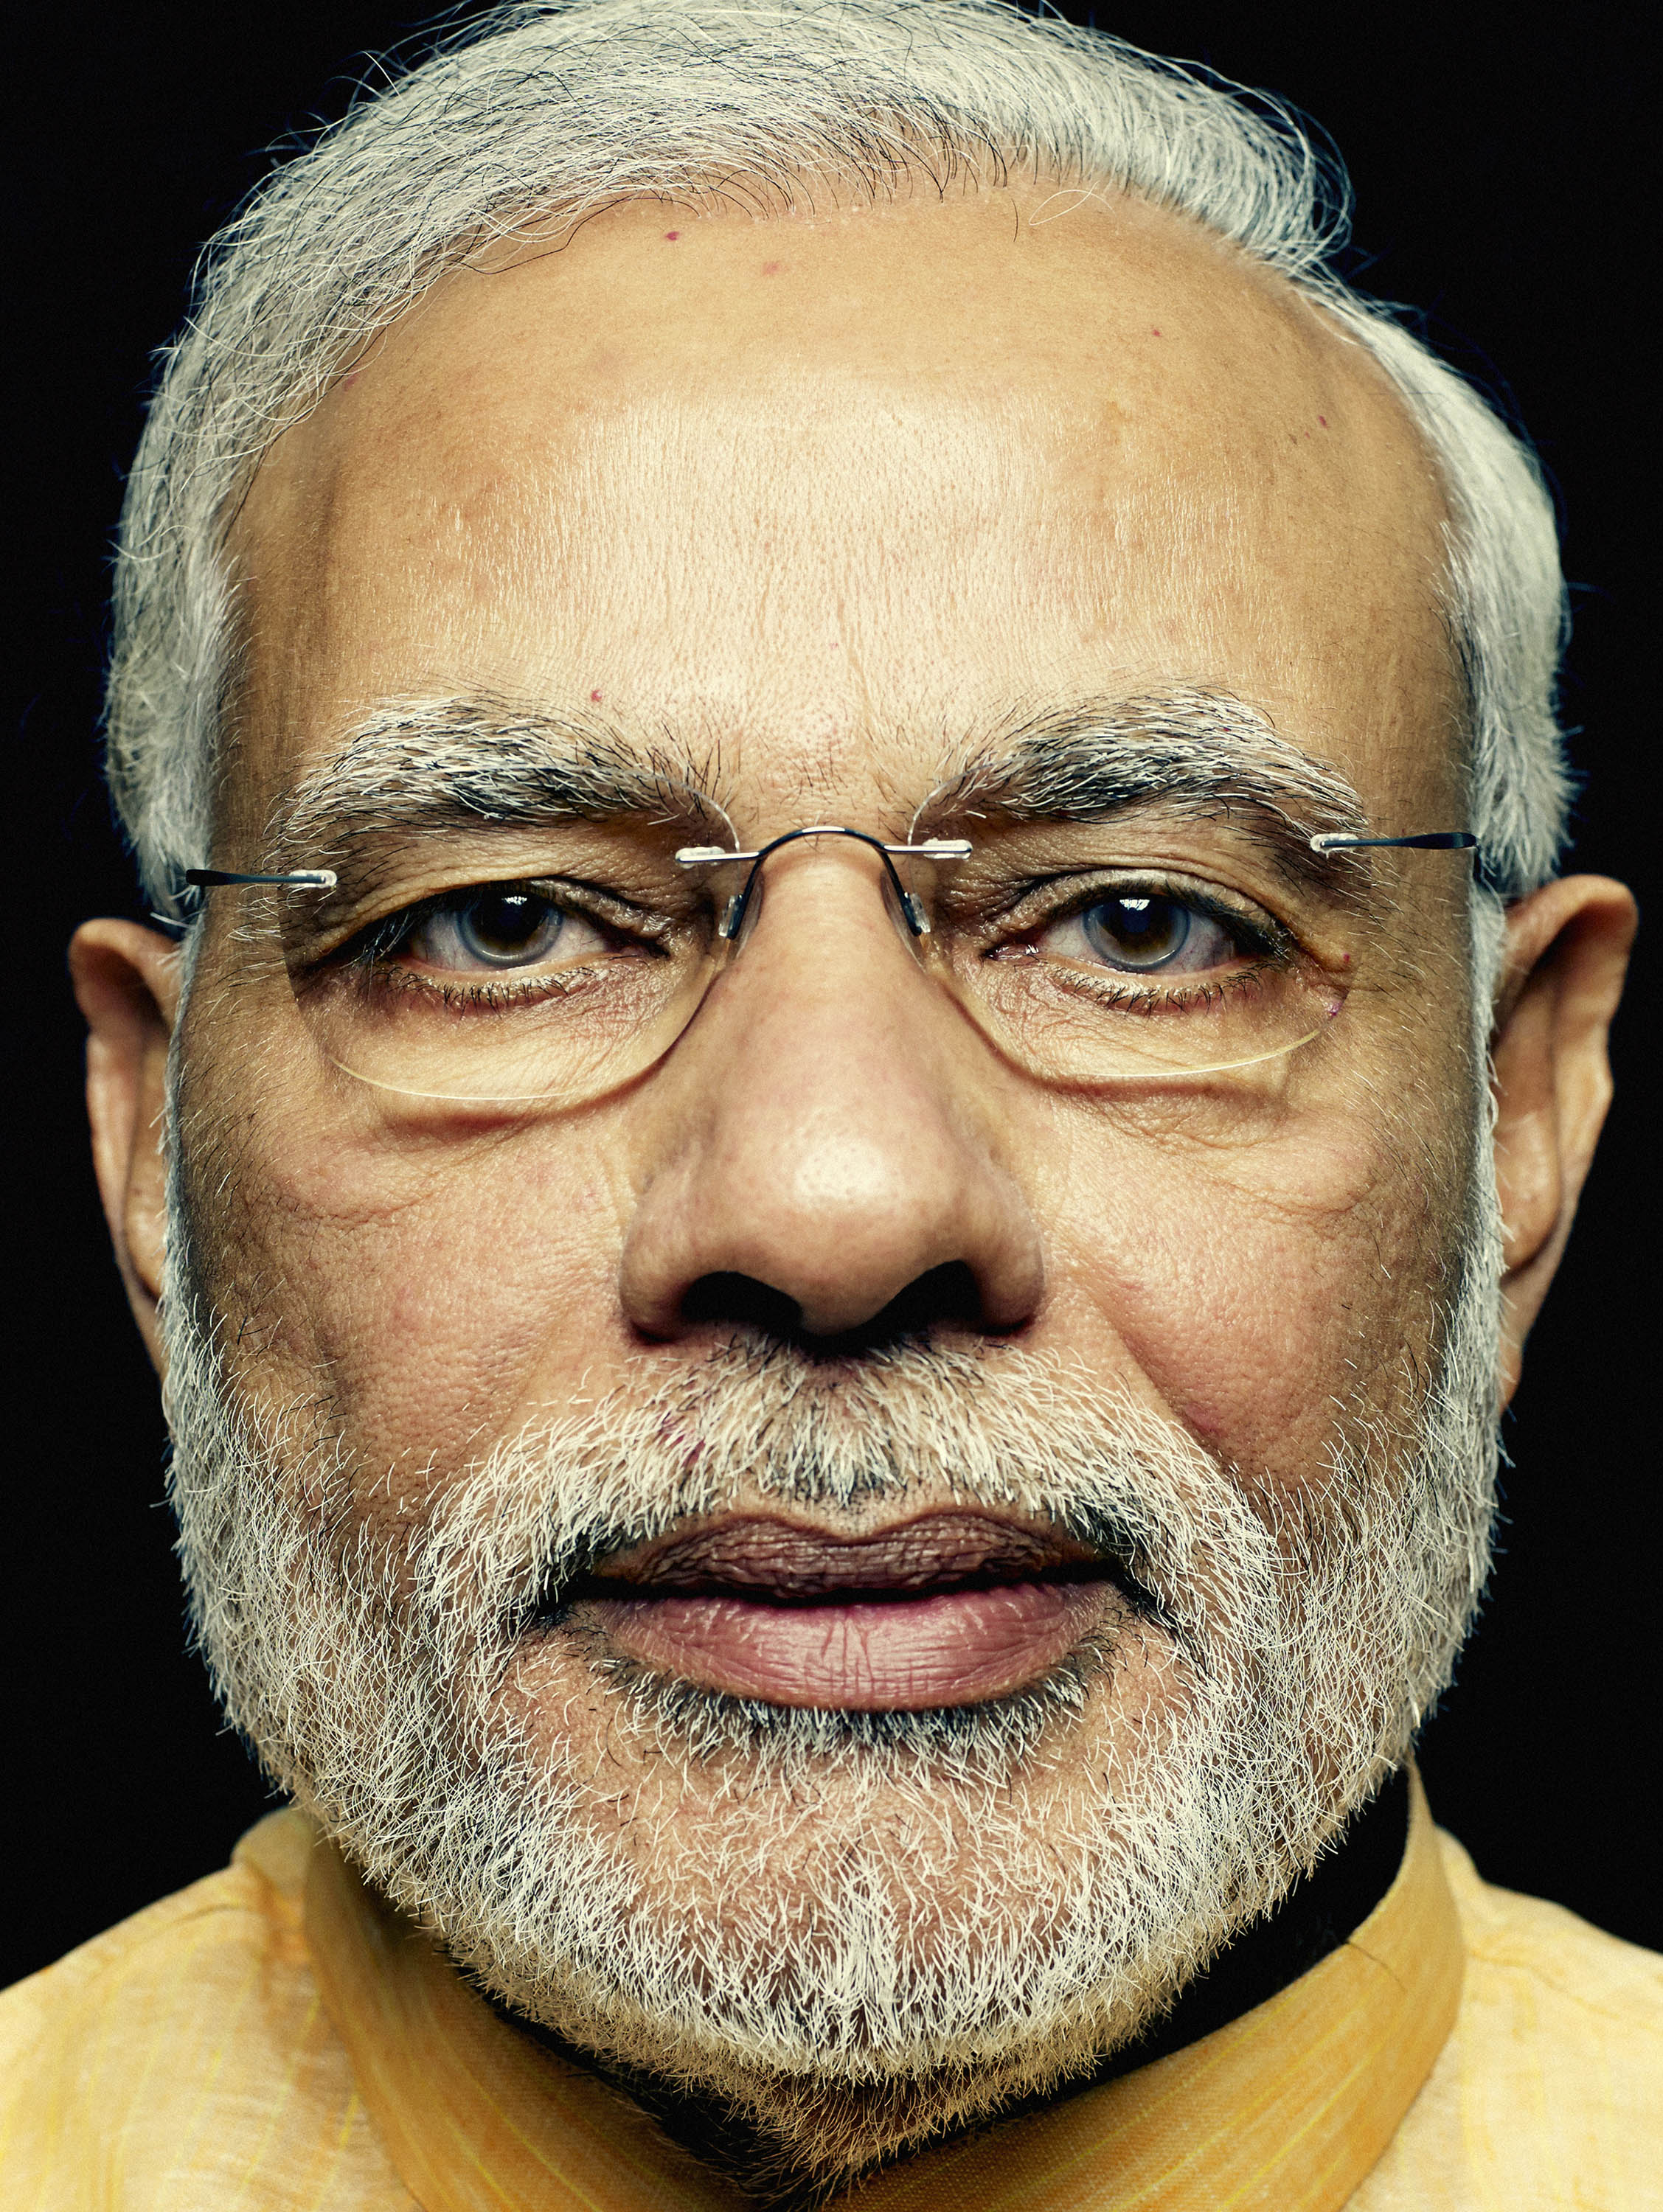 Narendra Modi wants to change India. Will he succeed?